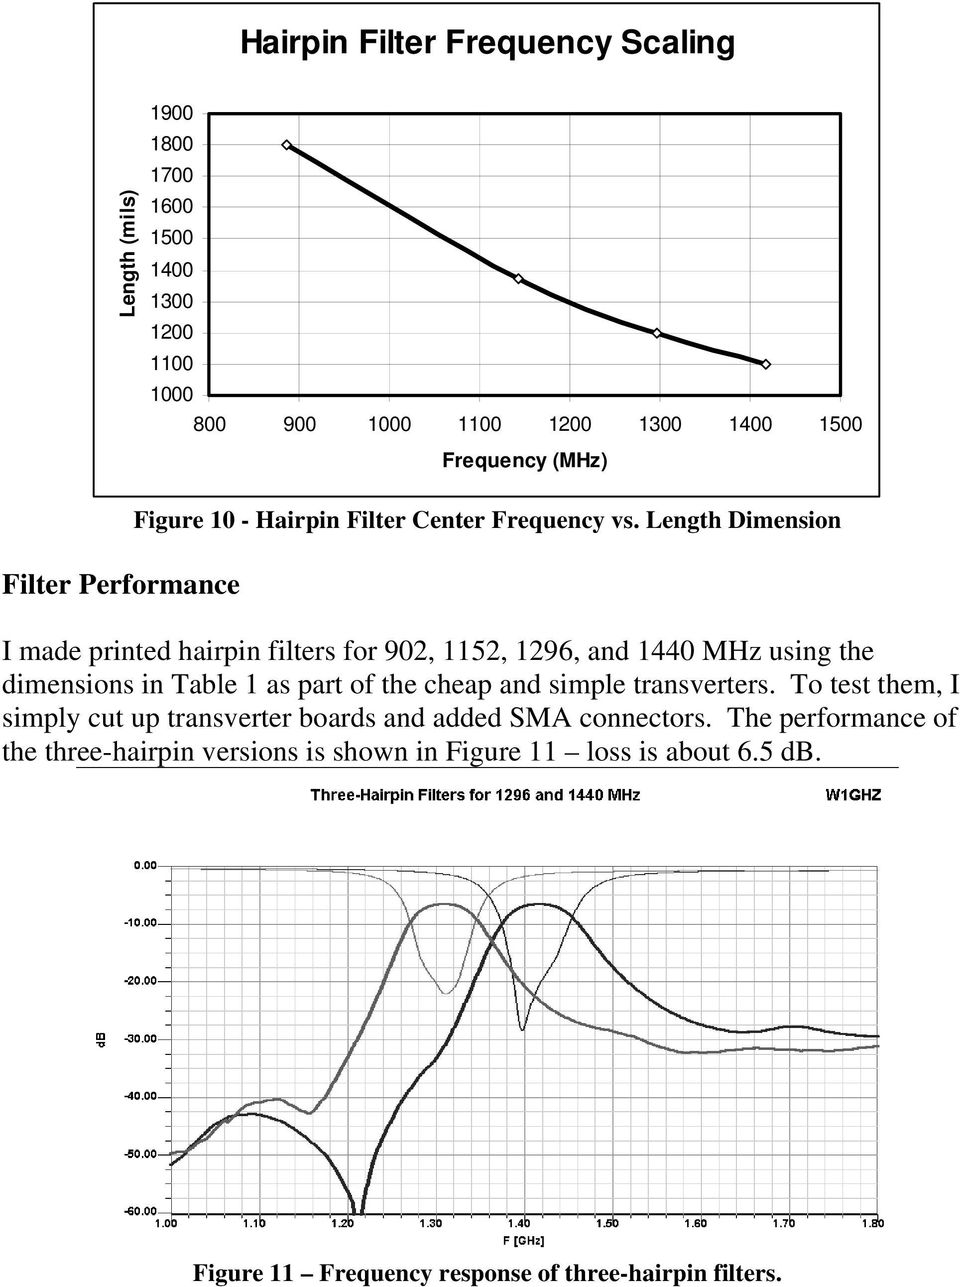 Recipes for Printed Hairpin Filters Paul Wade, W1GHZ PDF